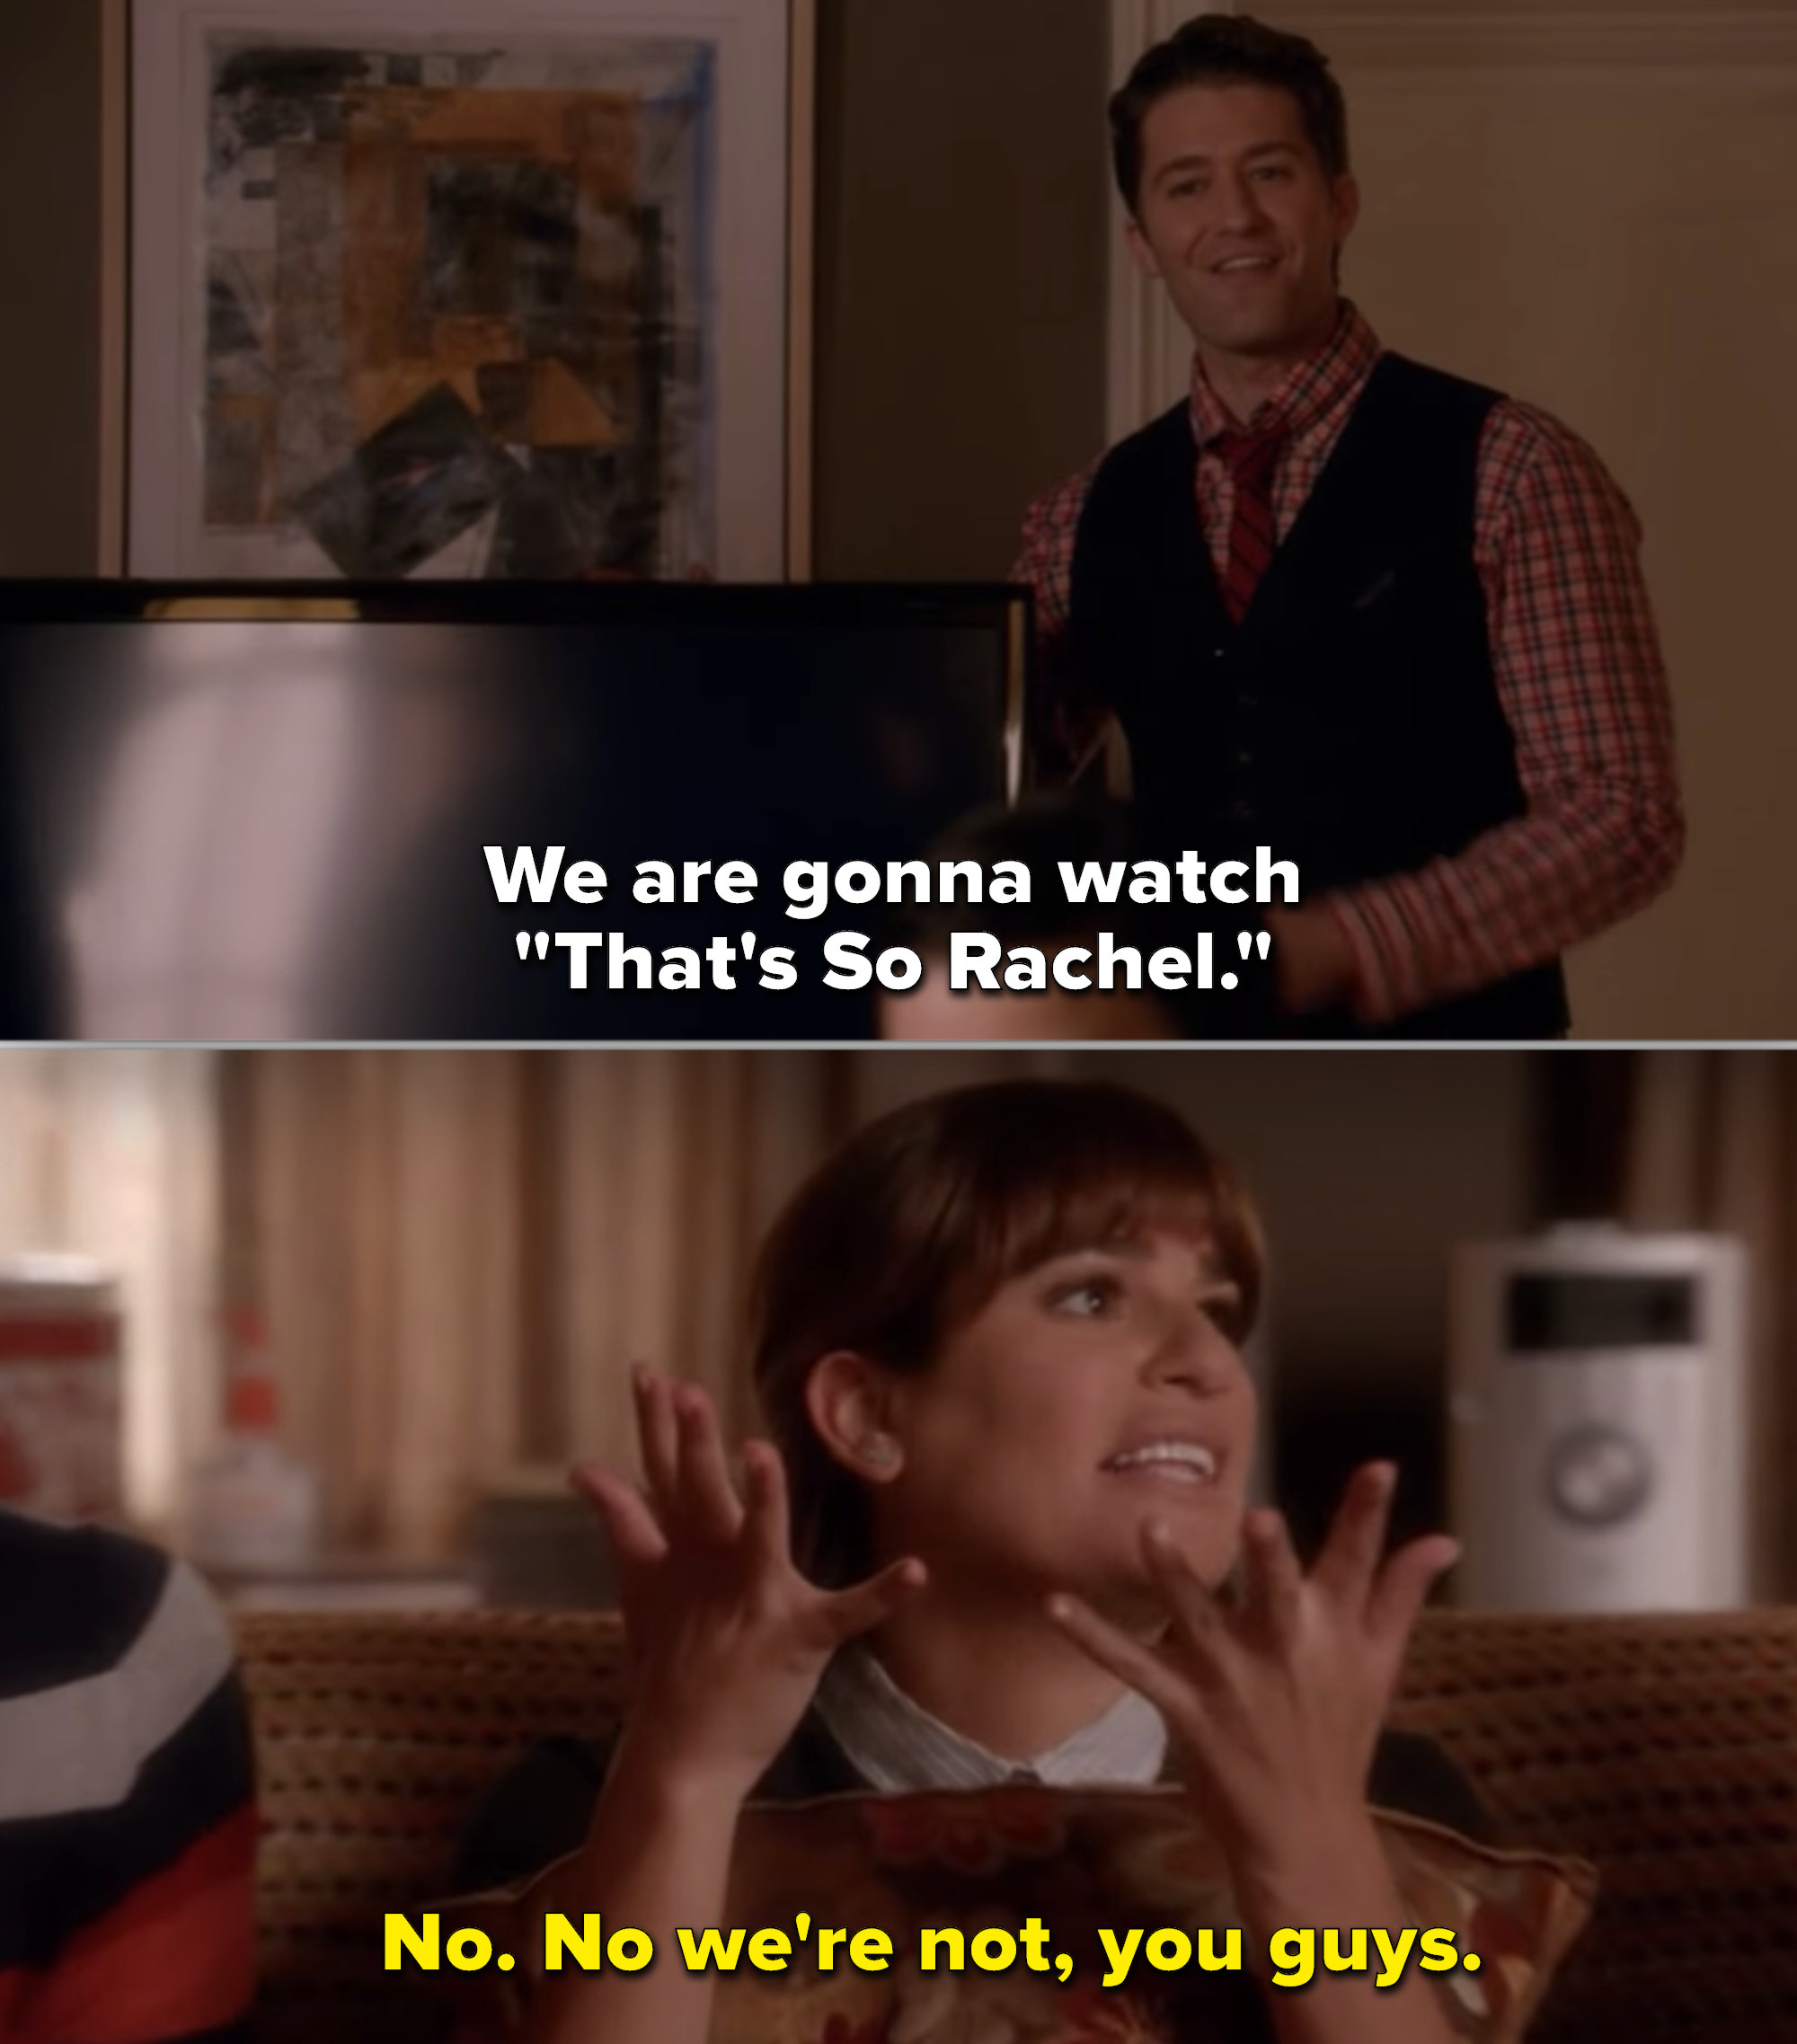 Rachel sitting on a couch